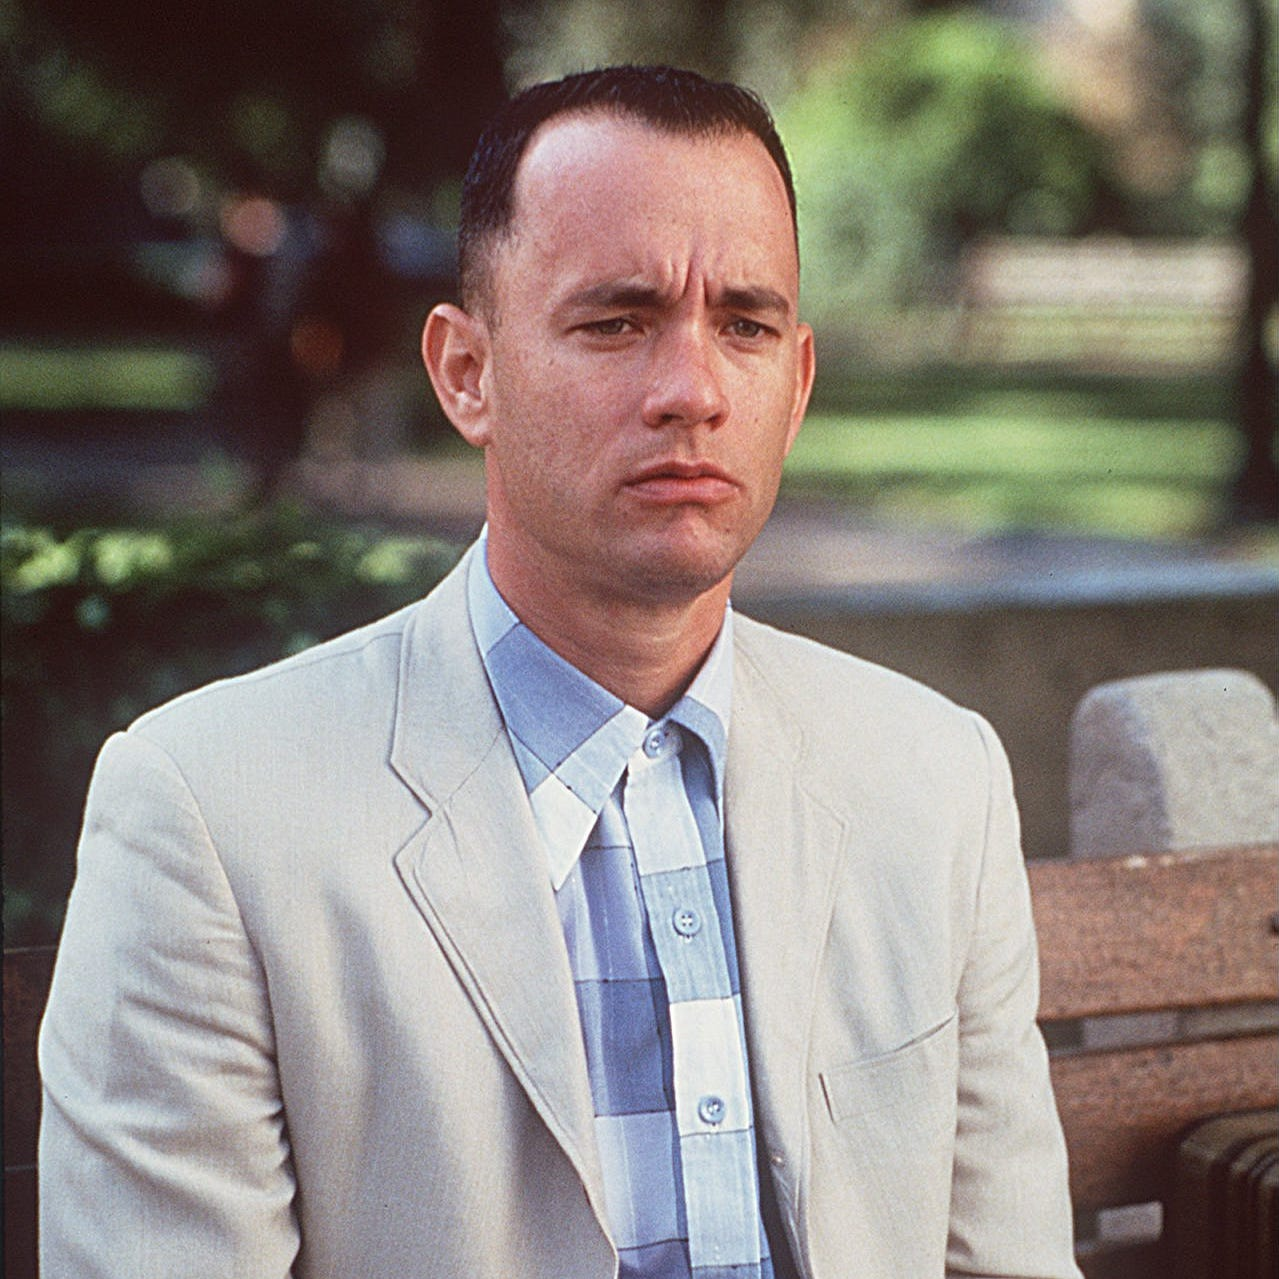 Why the 'Forrest Gump' sequel was halted: The film 'felt meaningless' following 9/11 attacks